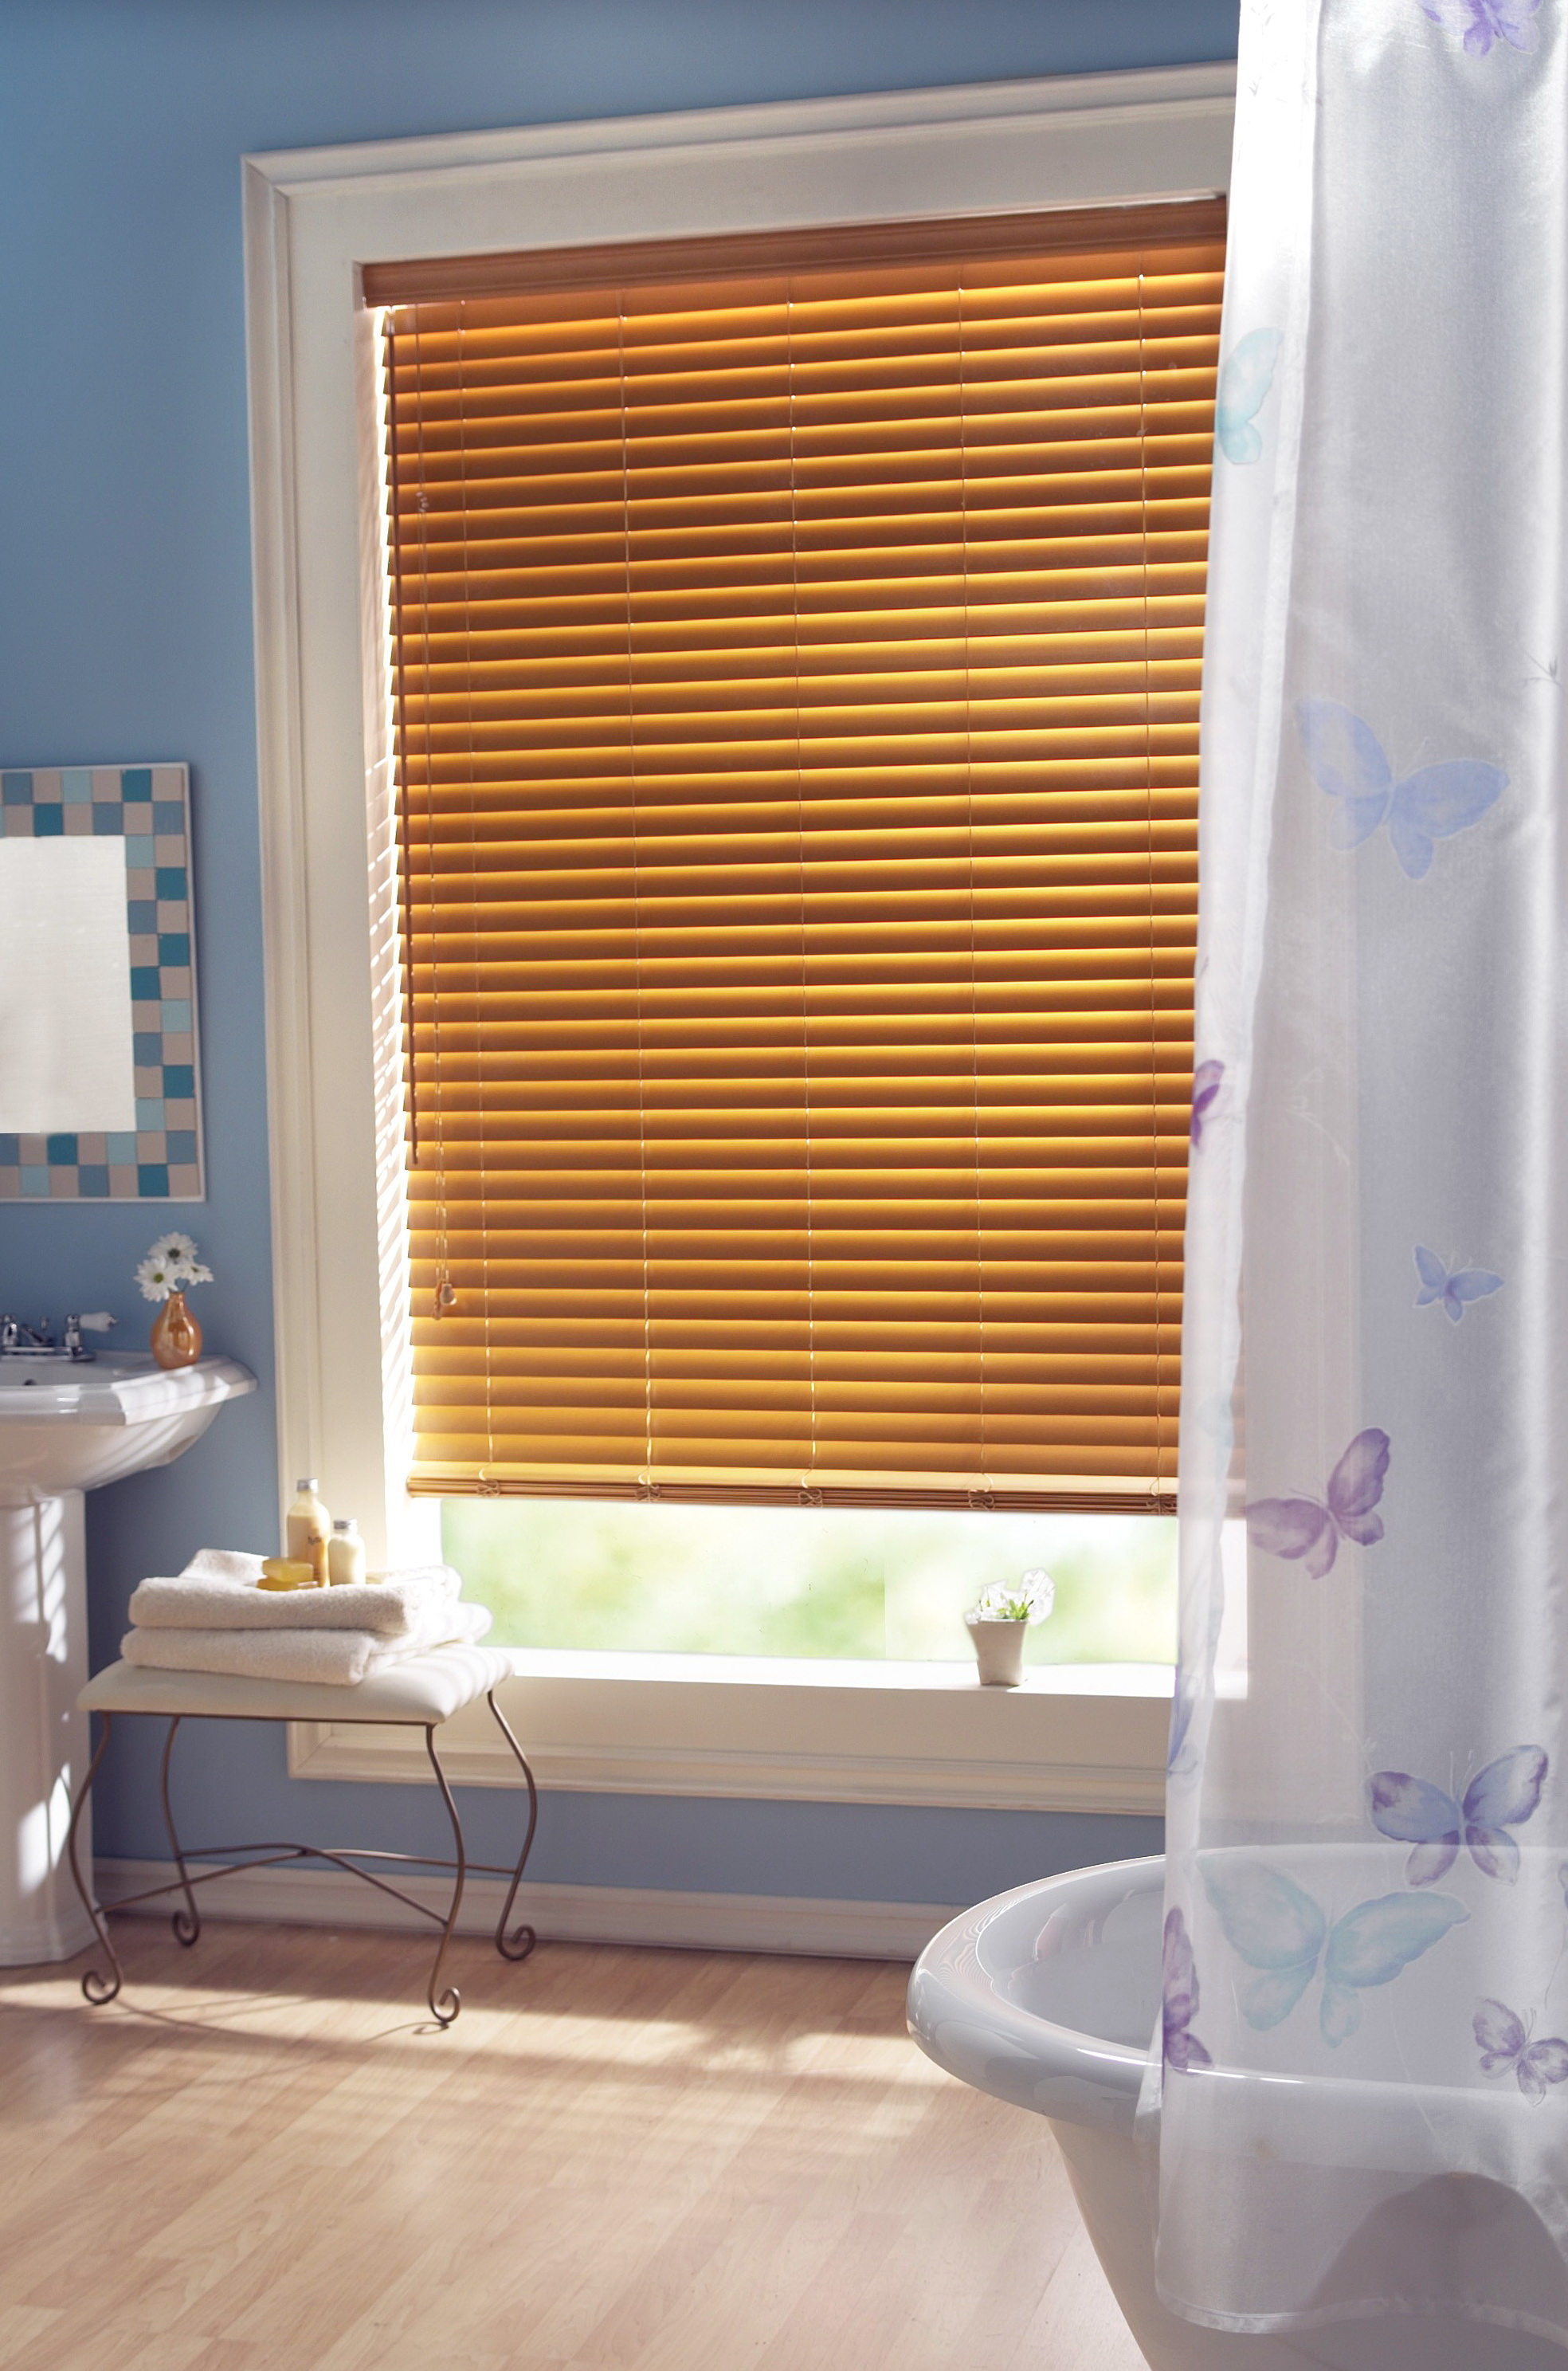 Types Of Curtains And Blinds Home Design Ideas